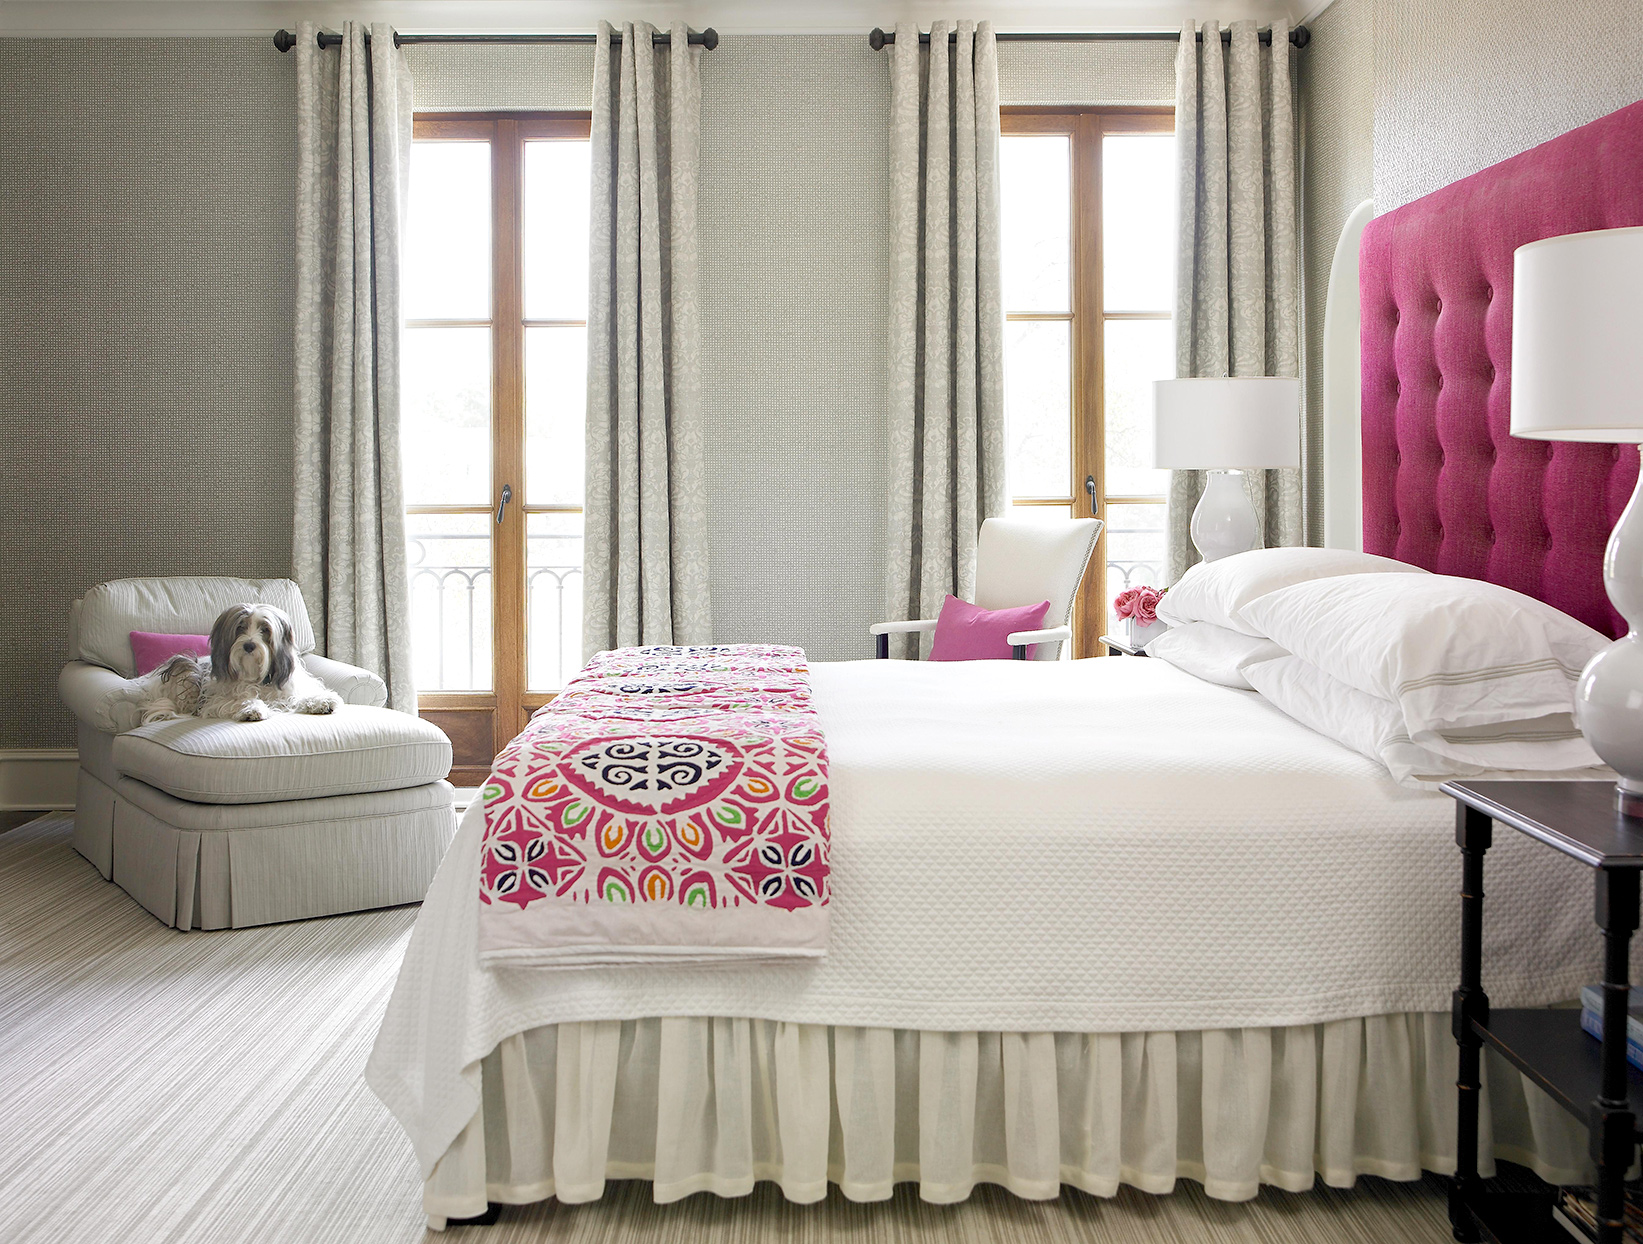 Bedroom with pink and white décor and gray textured walls